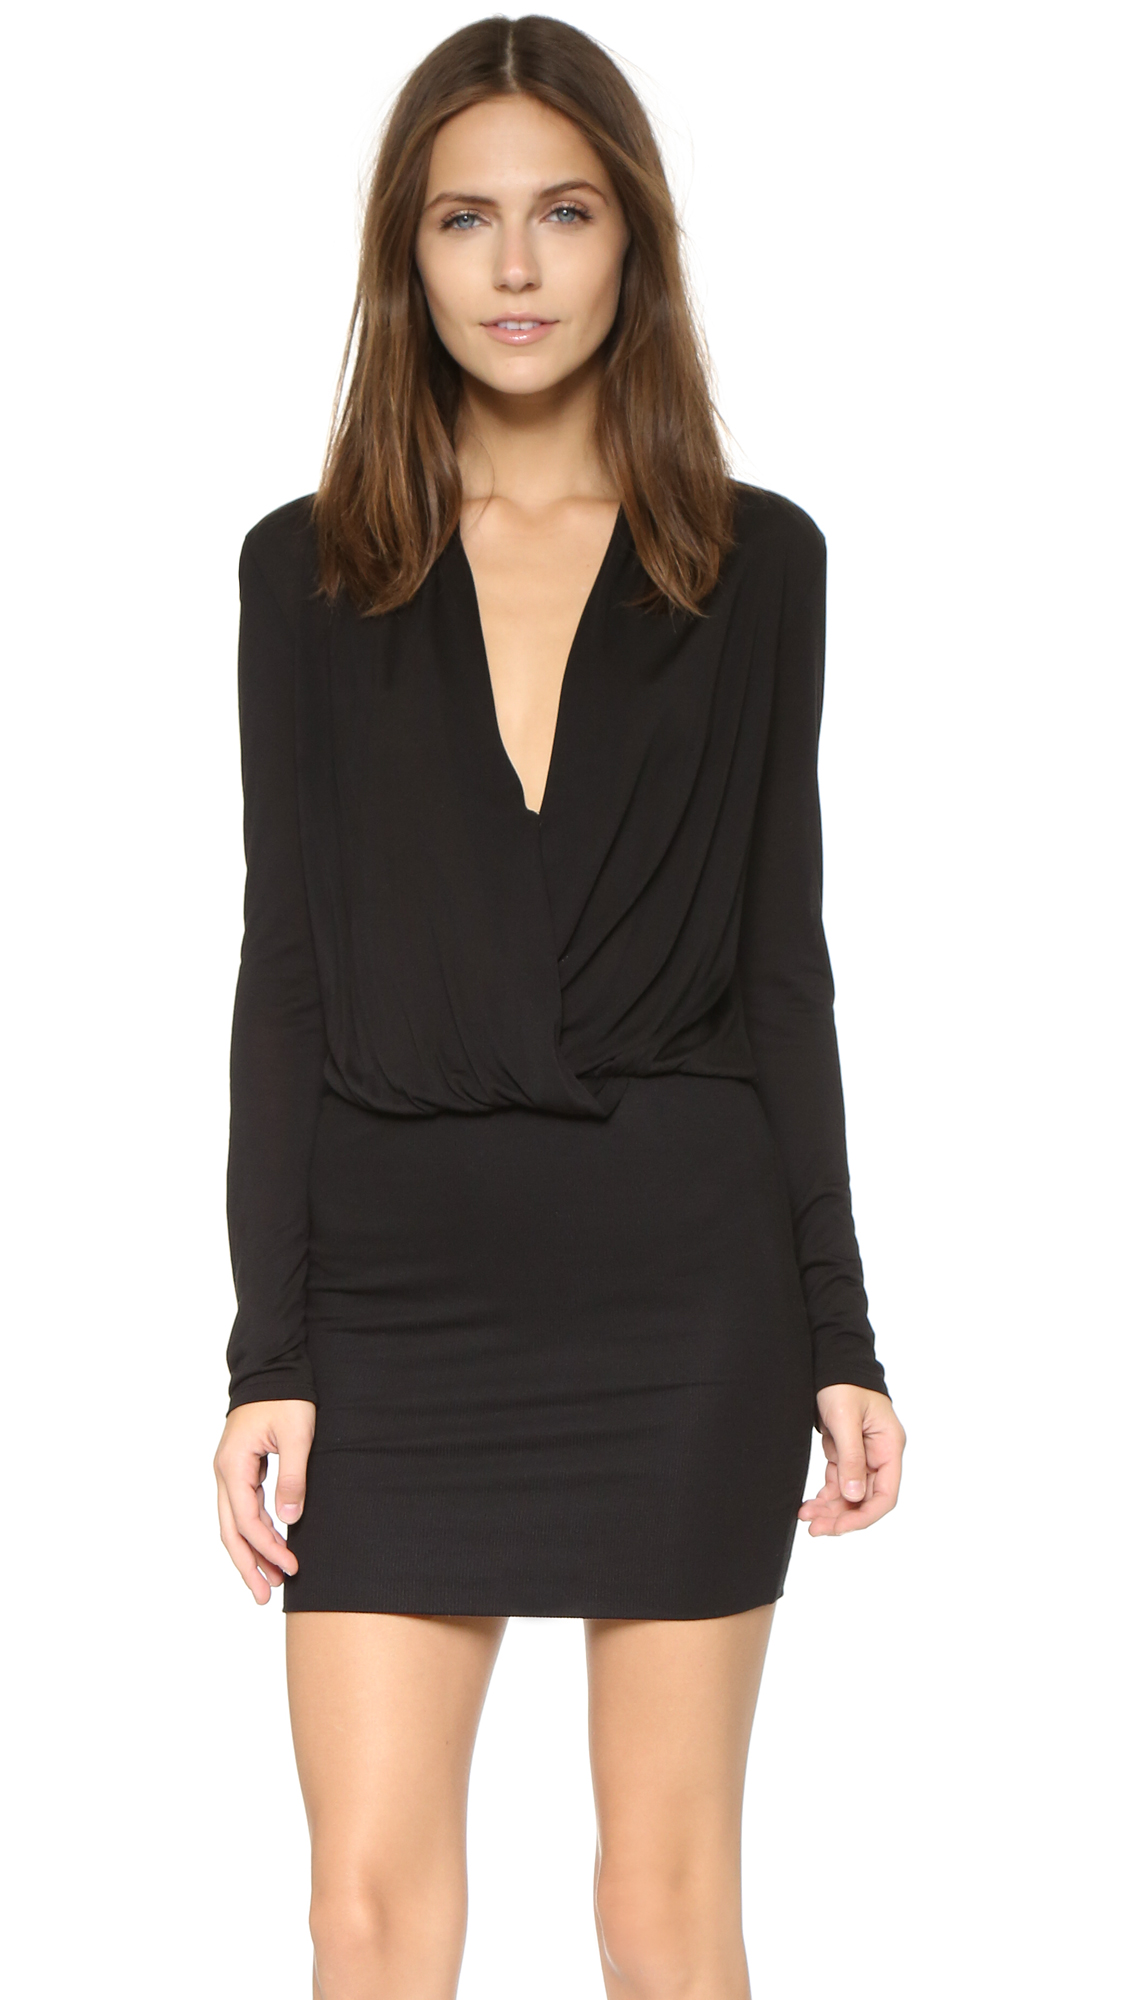 Lanston Surplice Long Sleeve Dress - Black at Shopbop